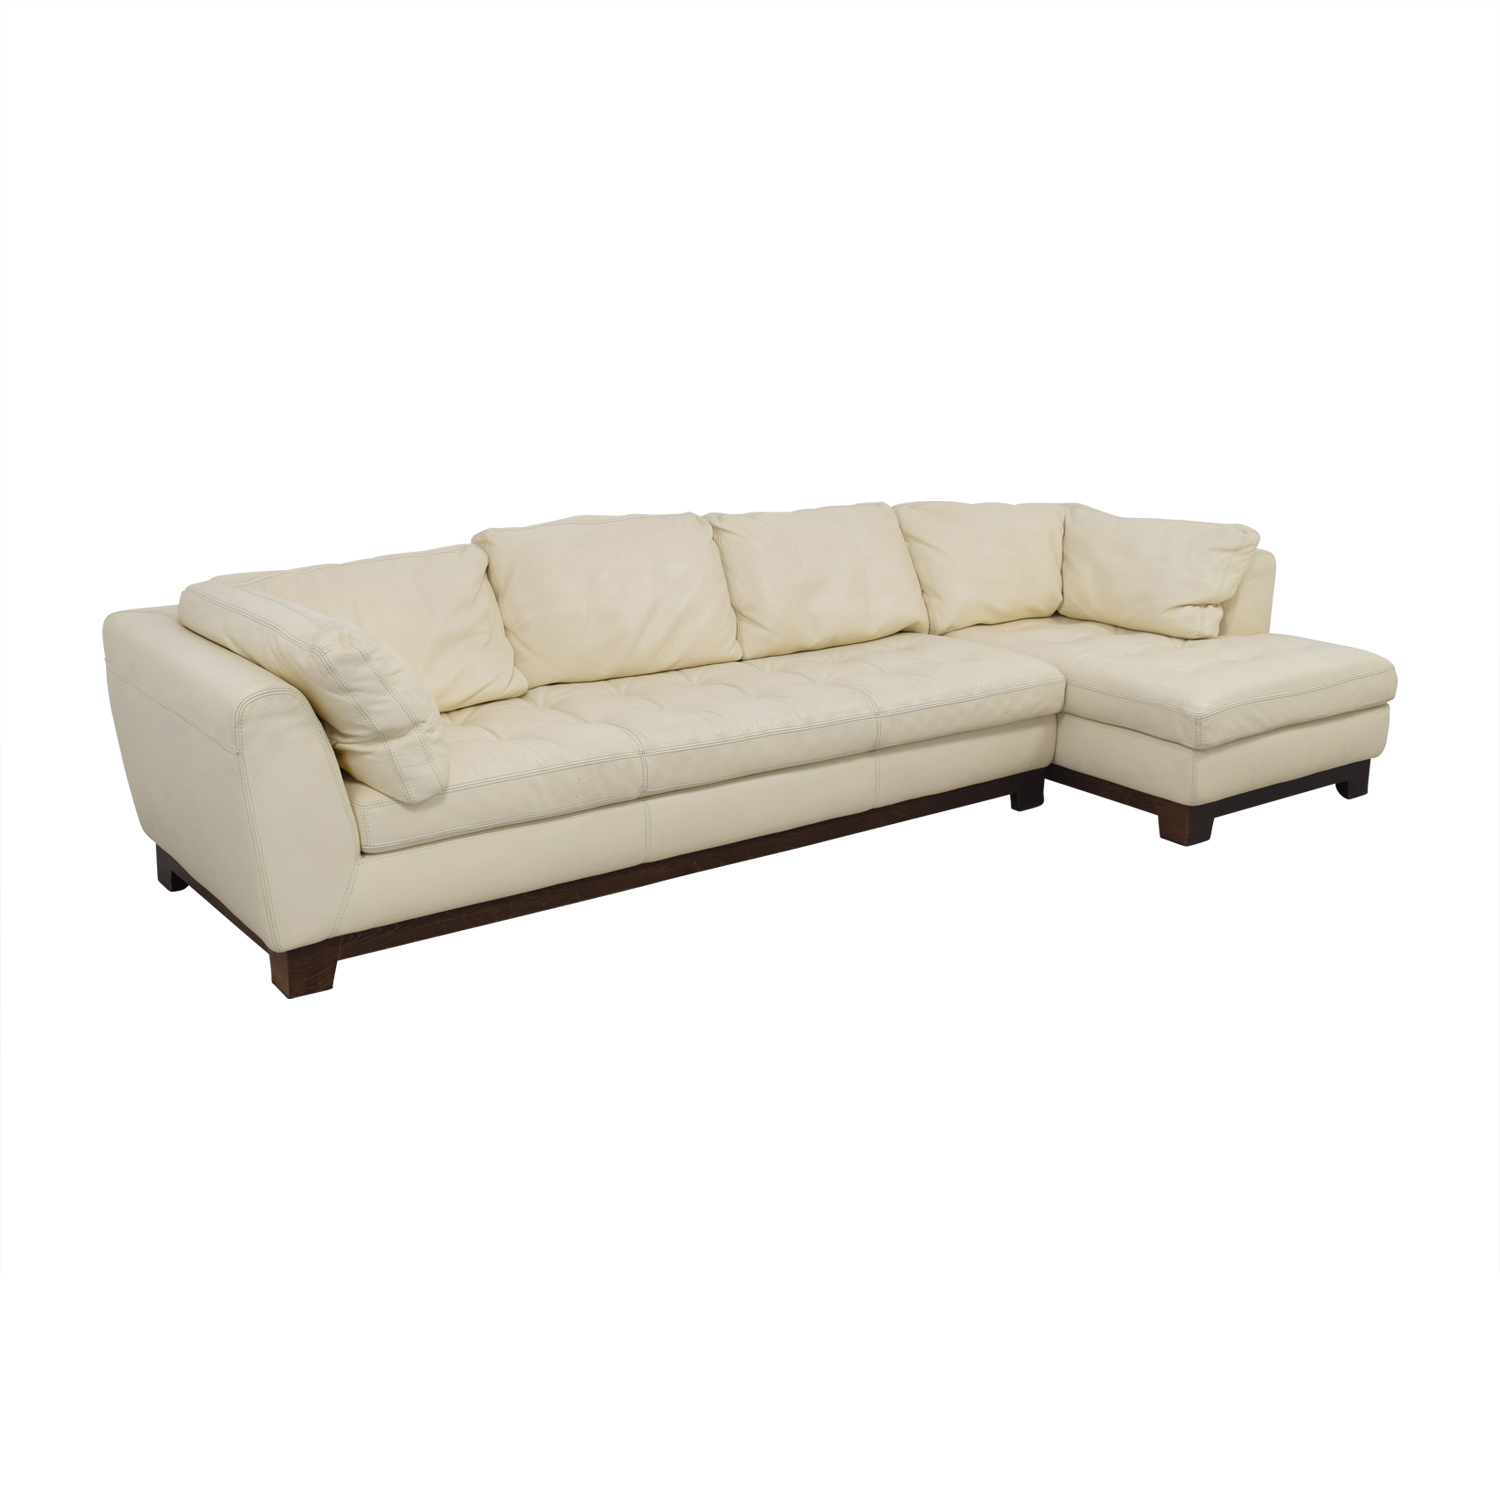 marco cream chaise sofa by factory outlet with lounge leather 89 off roche bobois